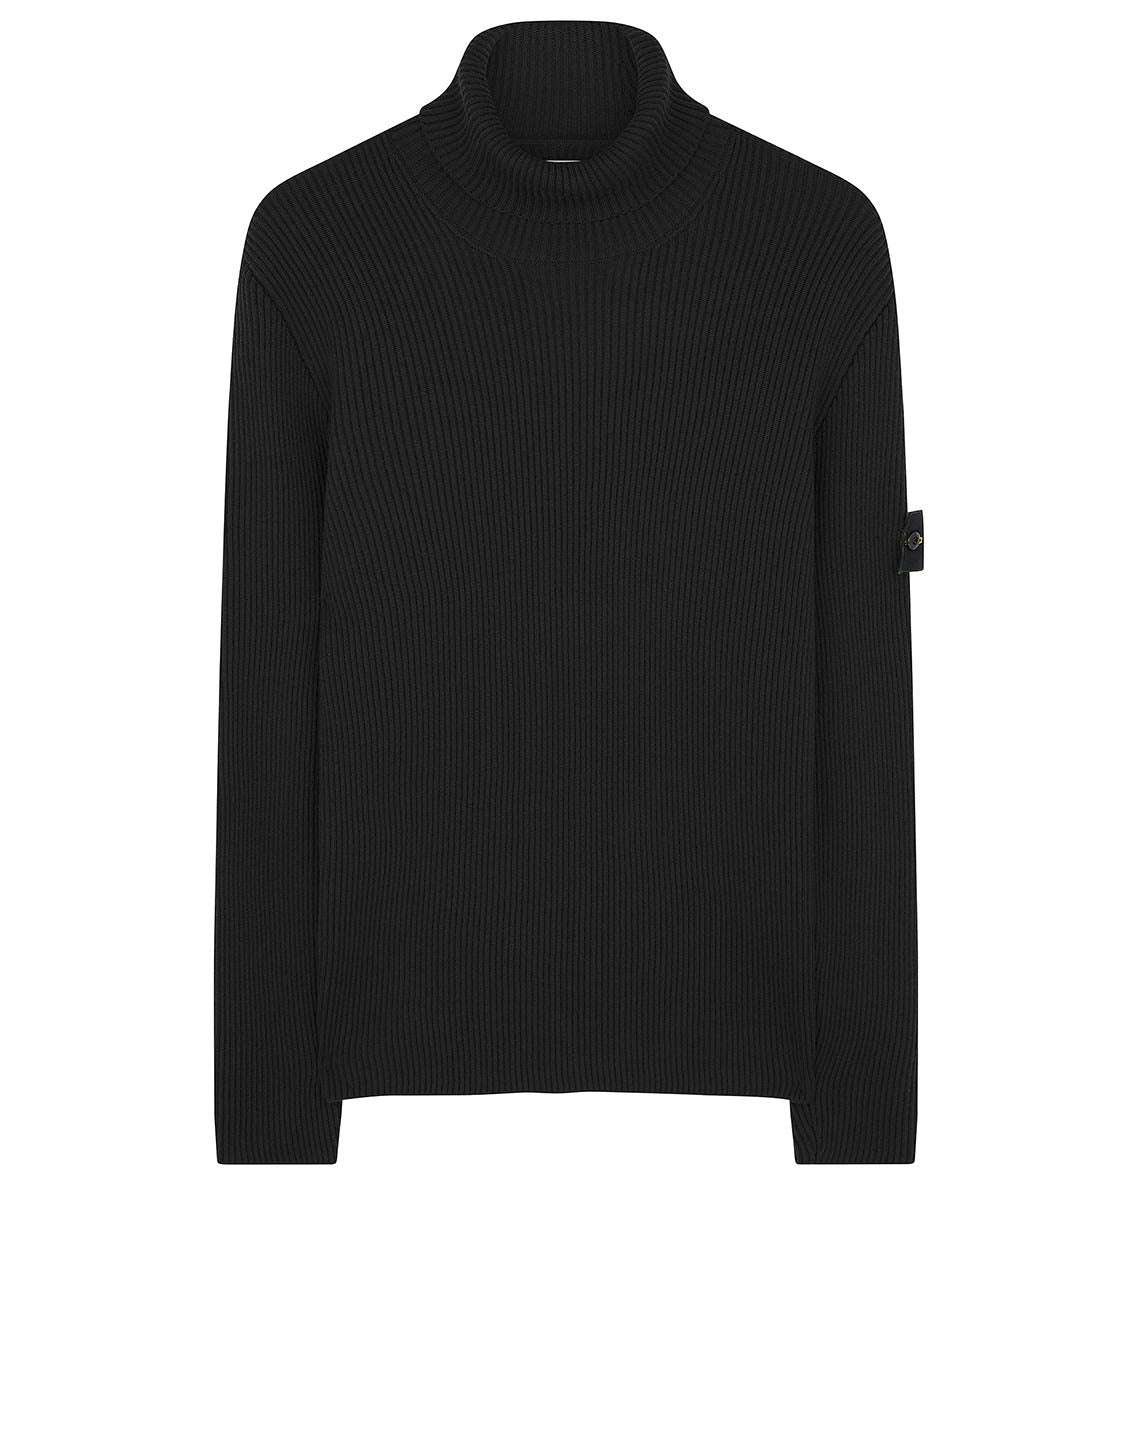 522C2 Turtleneck Jumper in Black